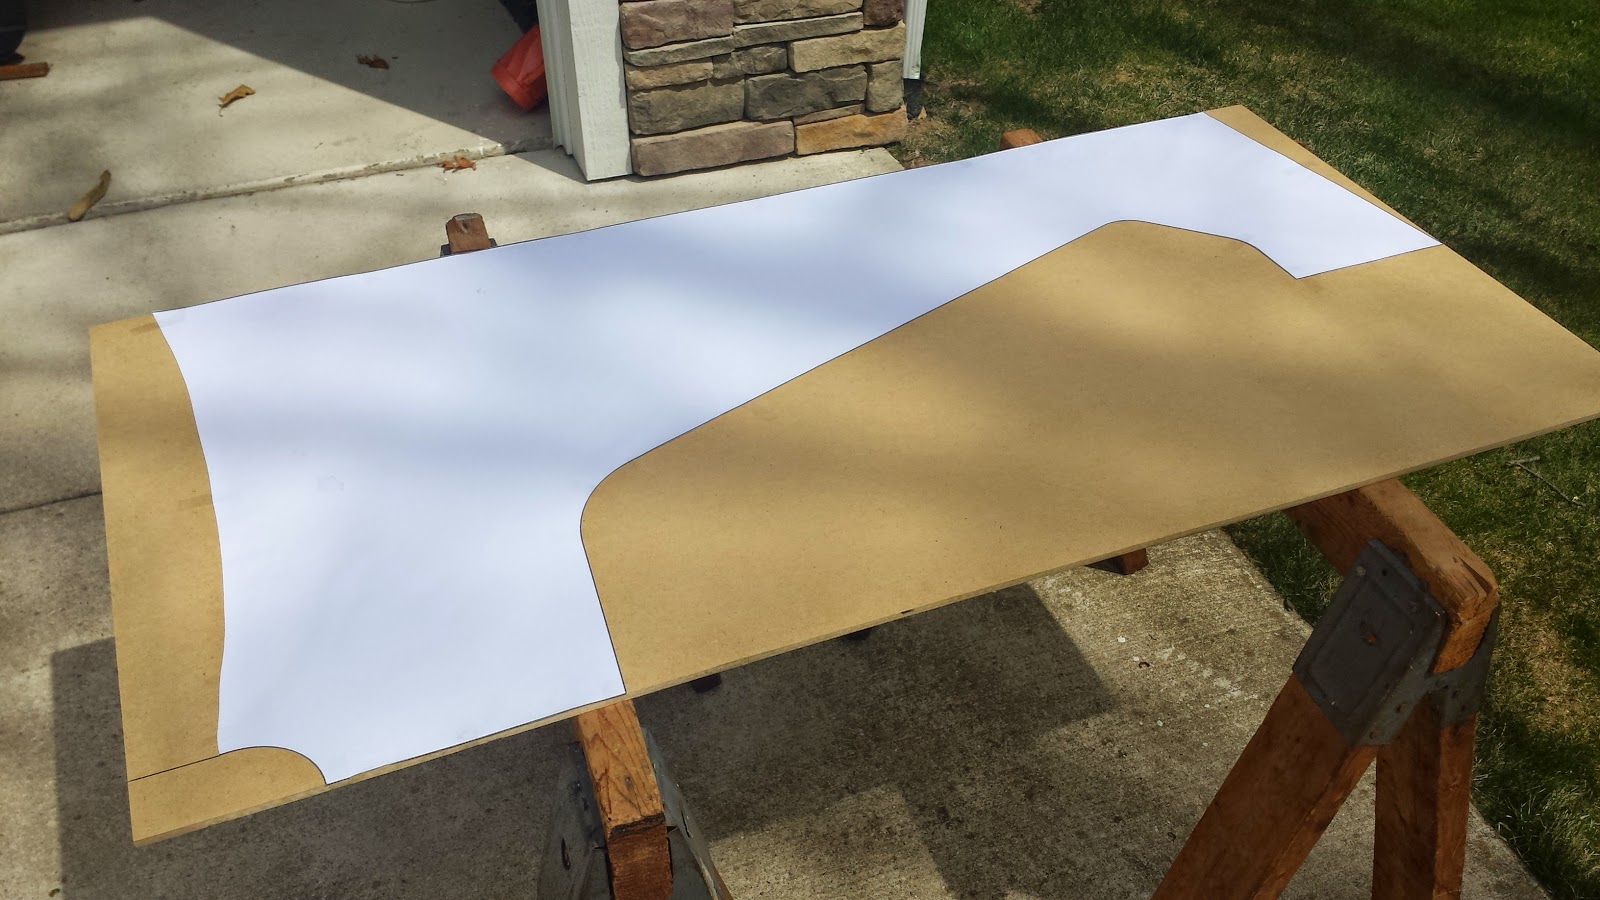 Paper Pattern Taped To 1 4 MDF